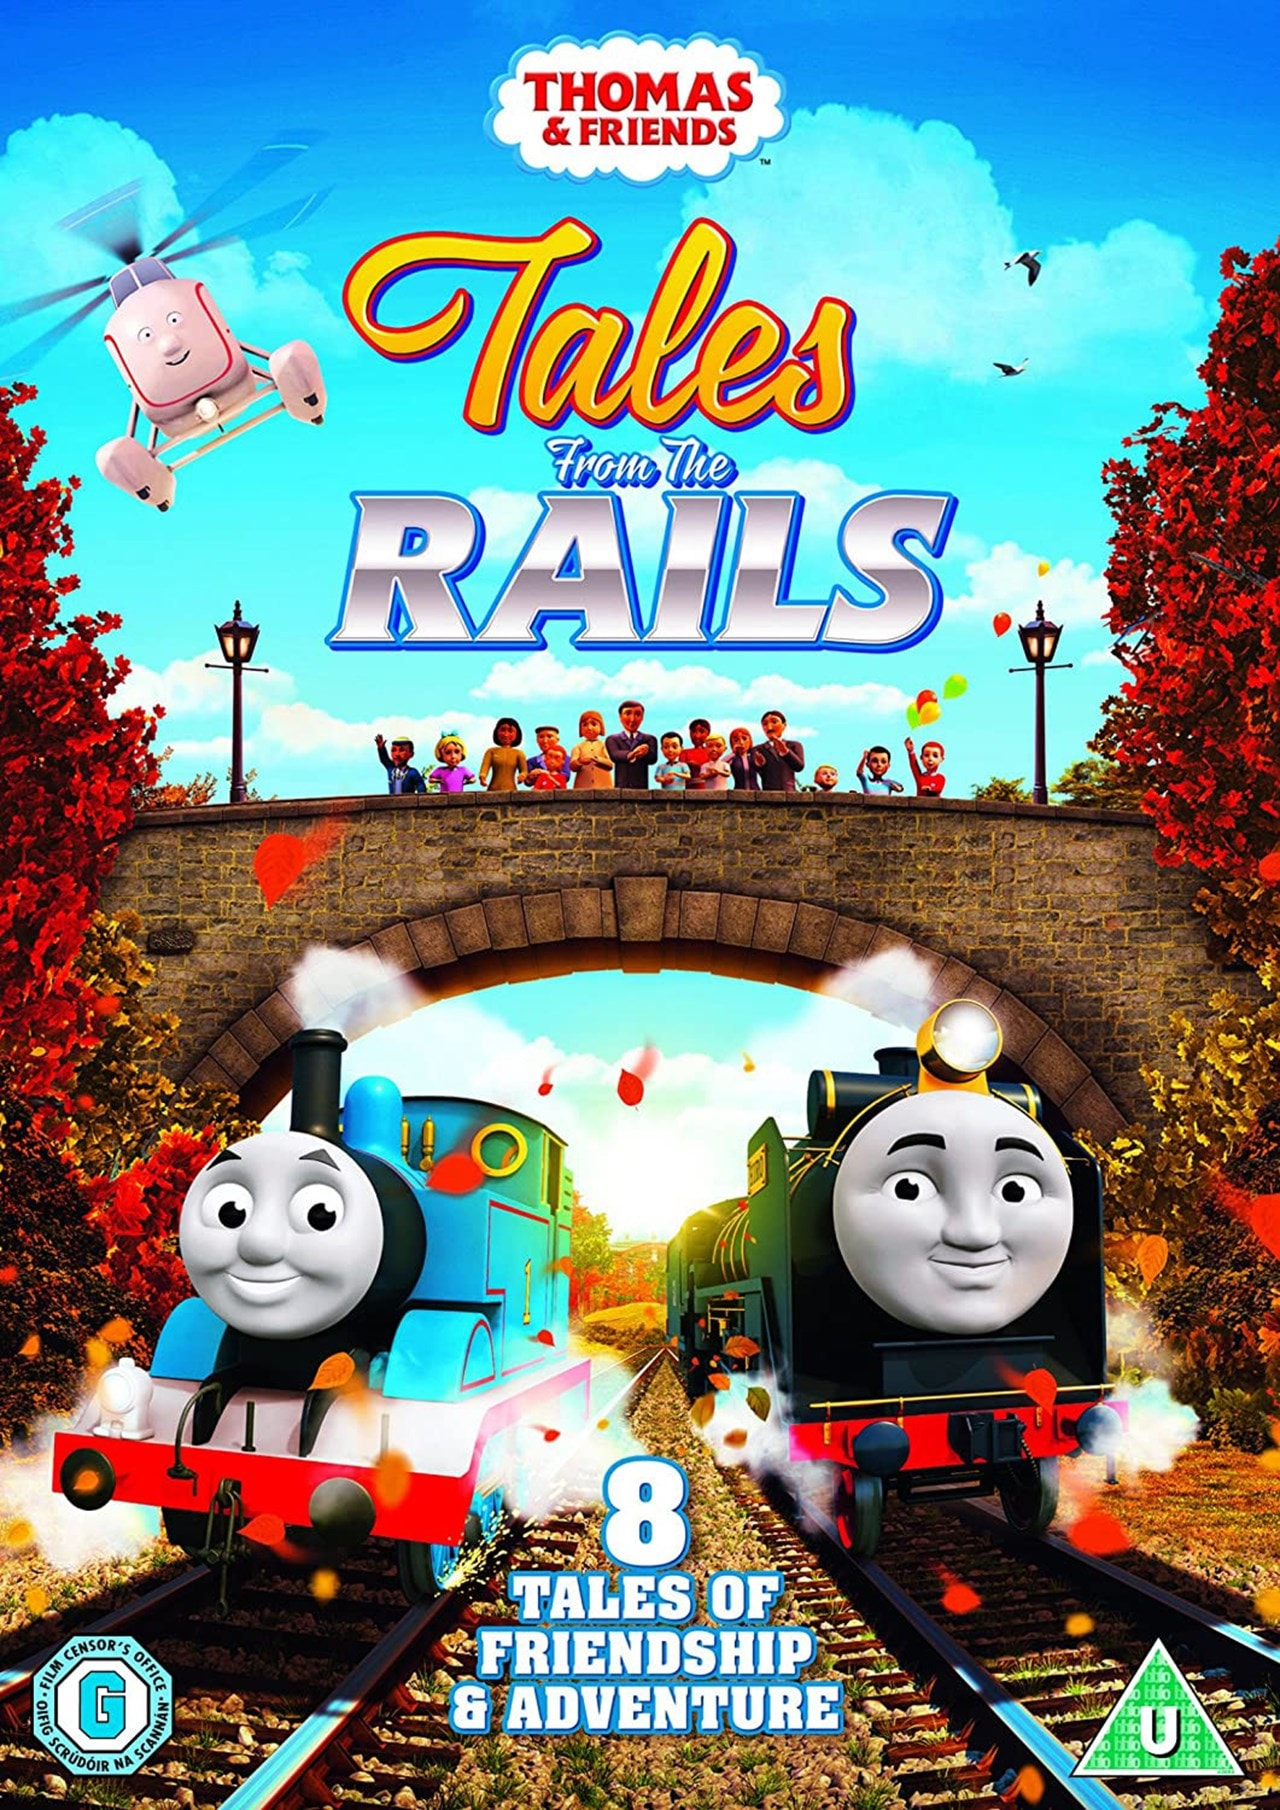 Thomas & Friends: Tales from the Rails - 1